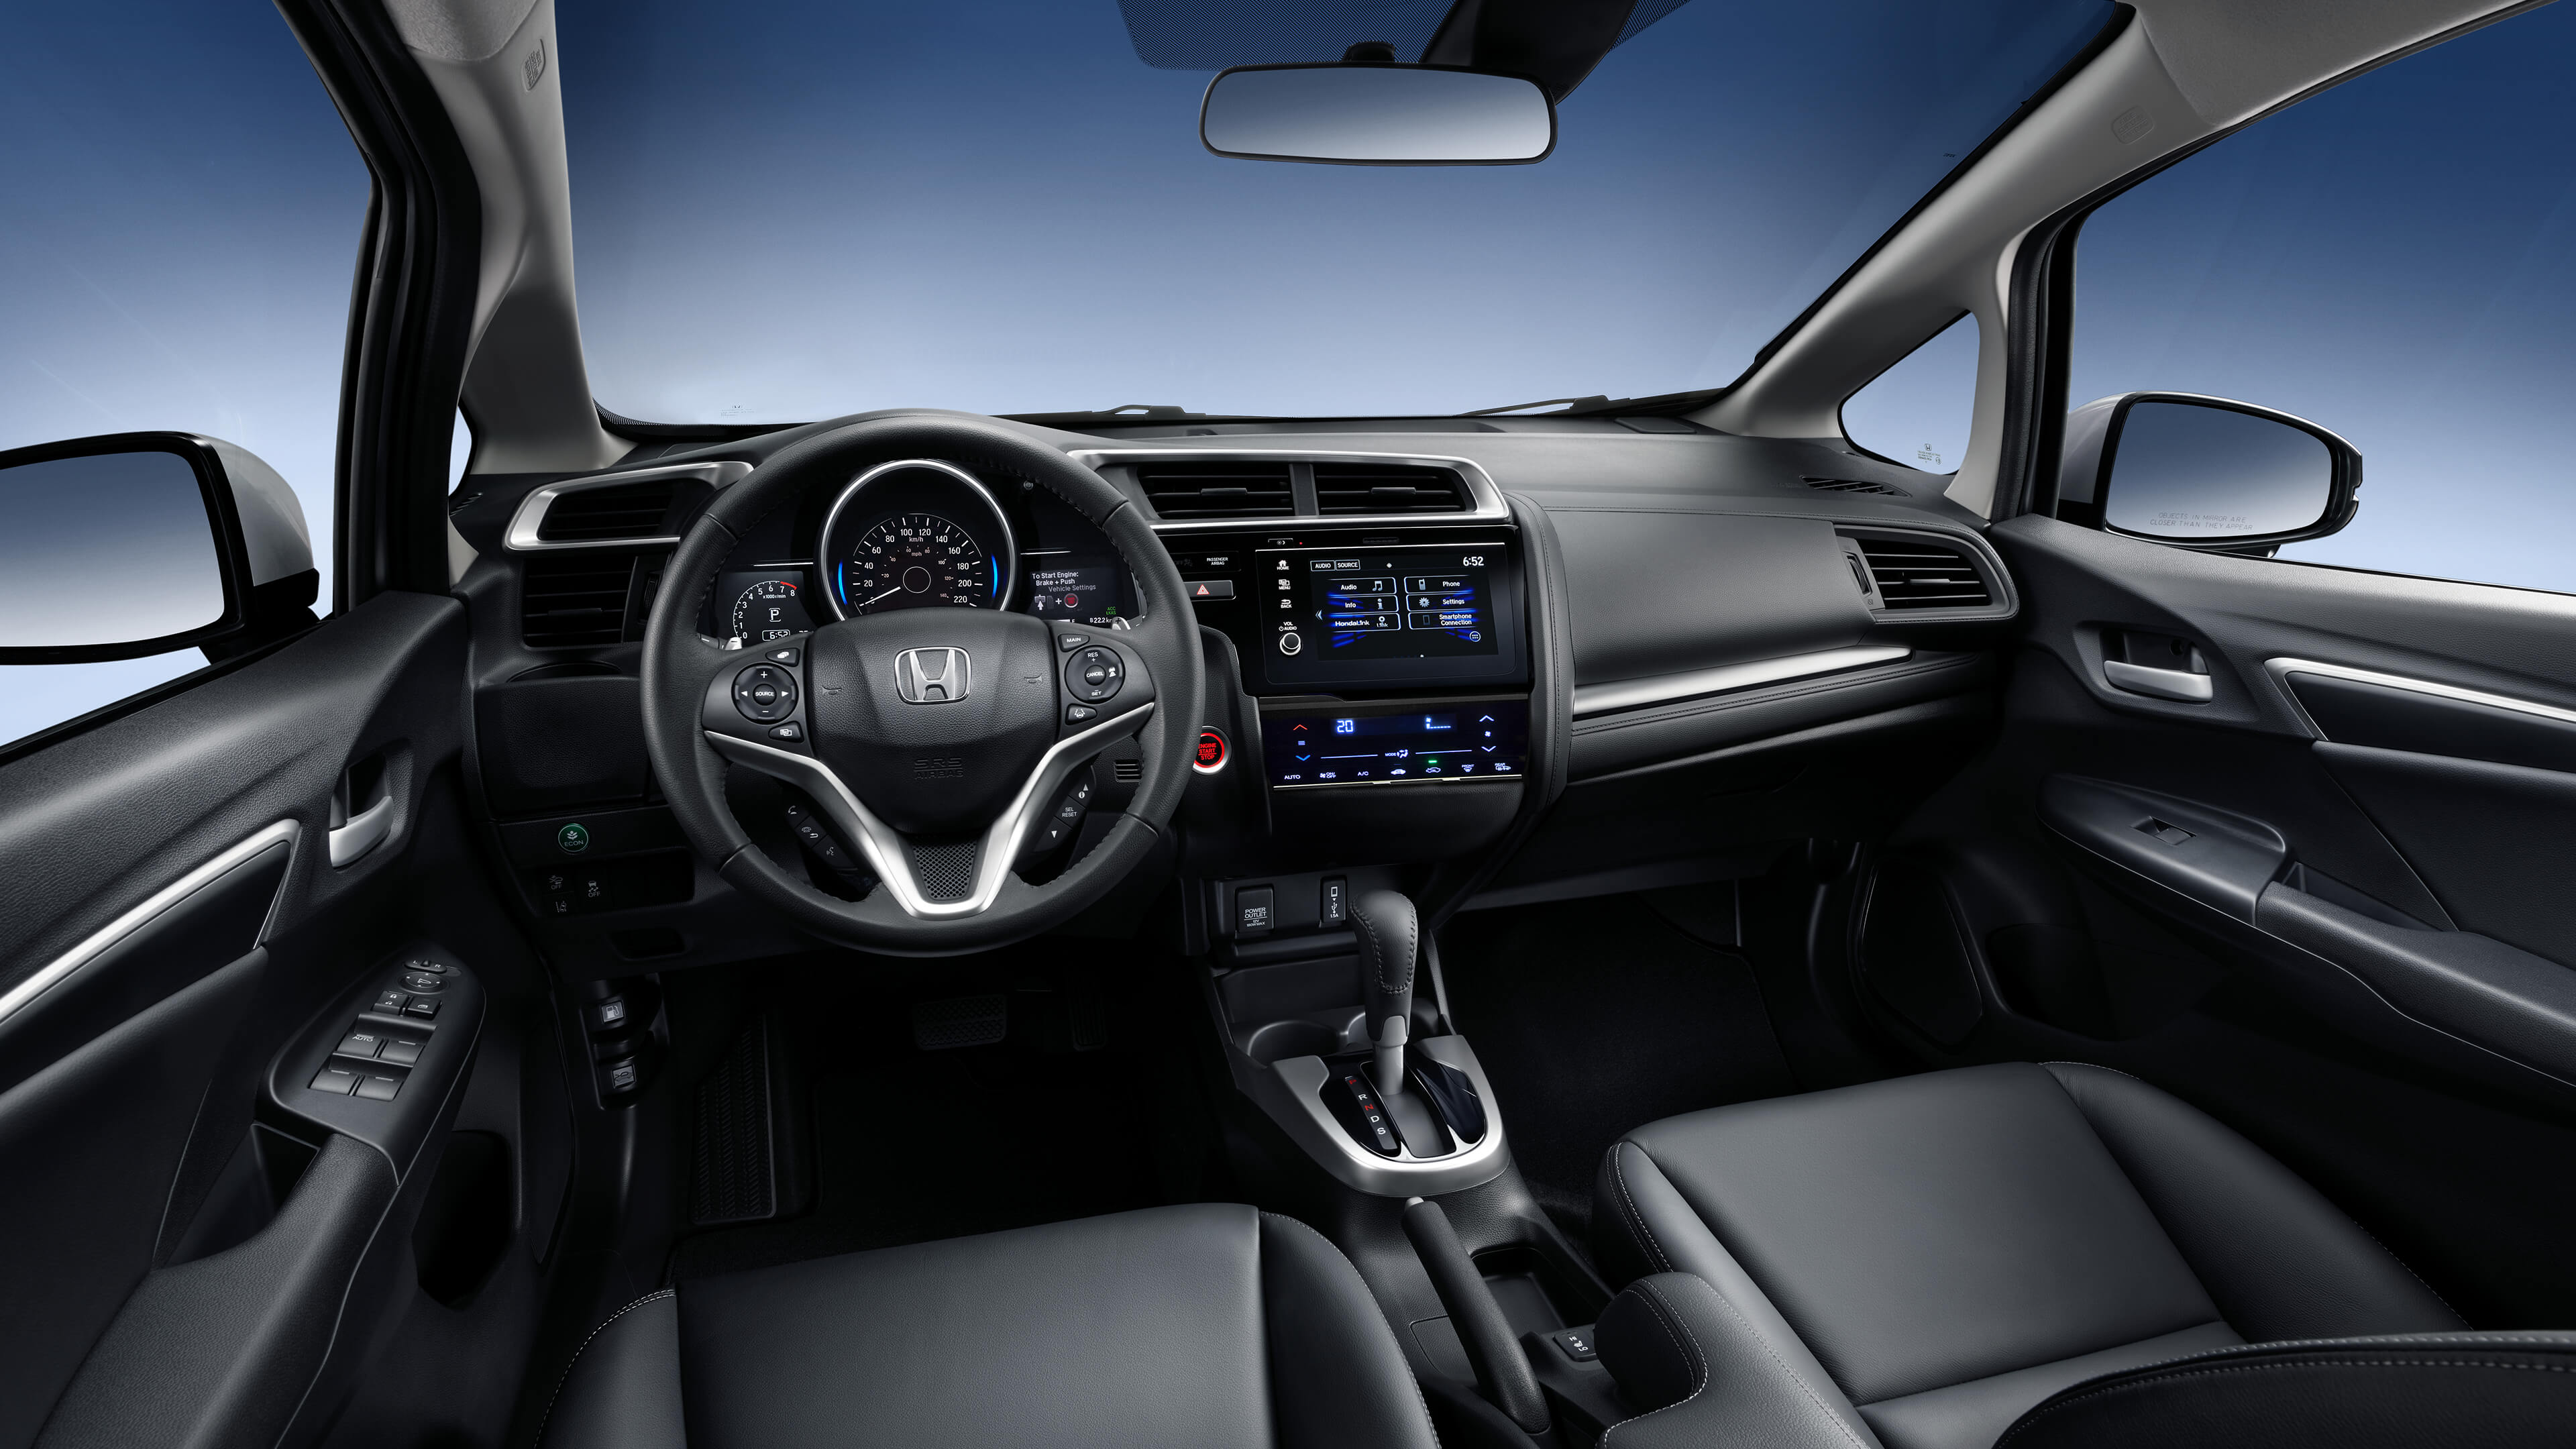 Front interior of the Fit with seats, steering wheel and dashboard